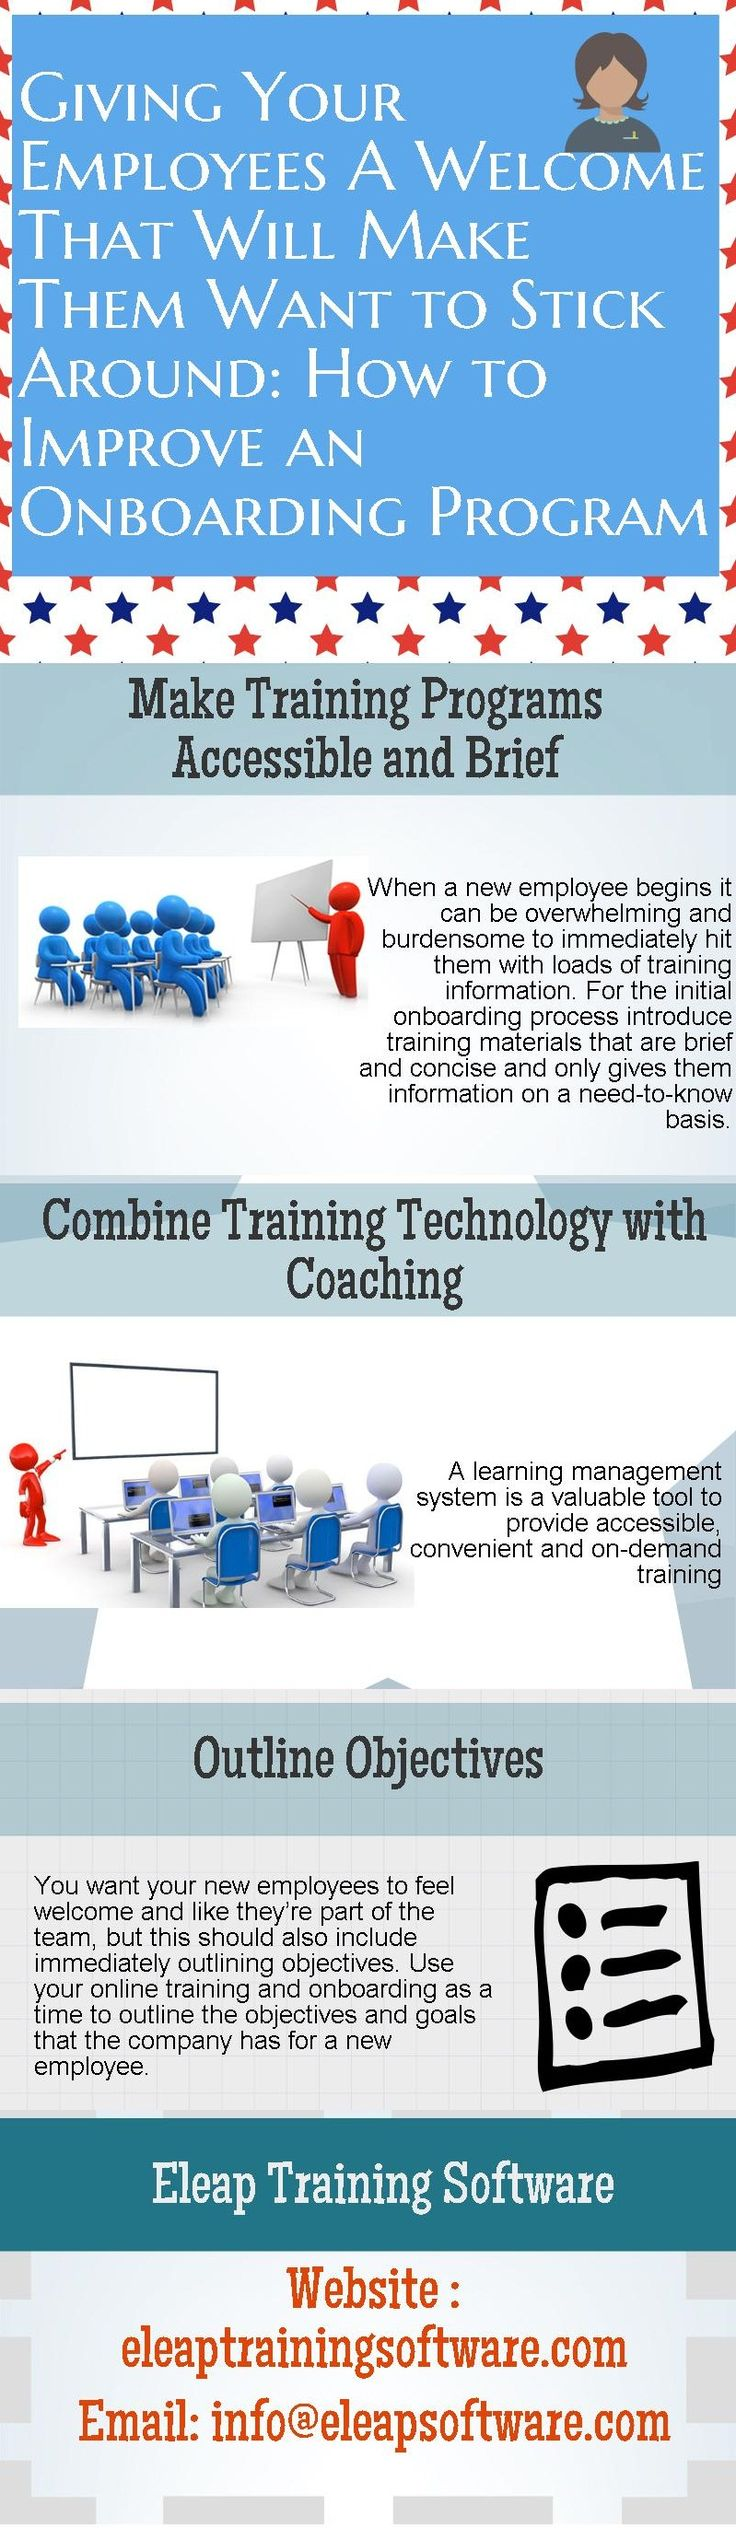 Eleap - Learning Management System | Management and Learning